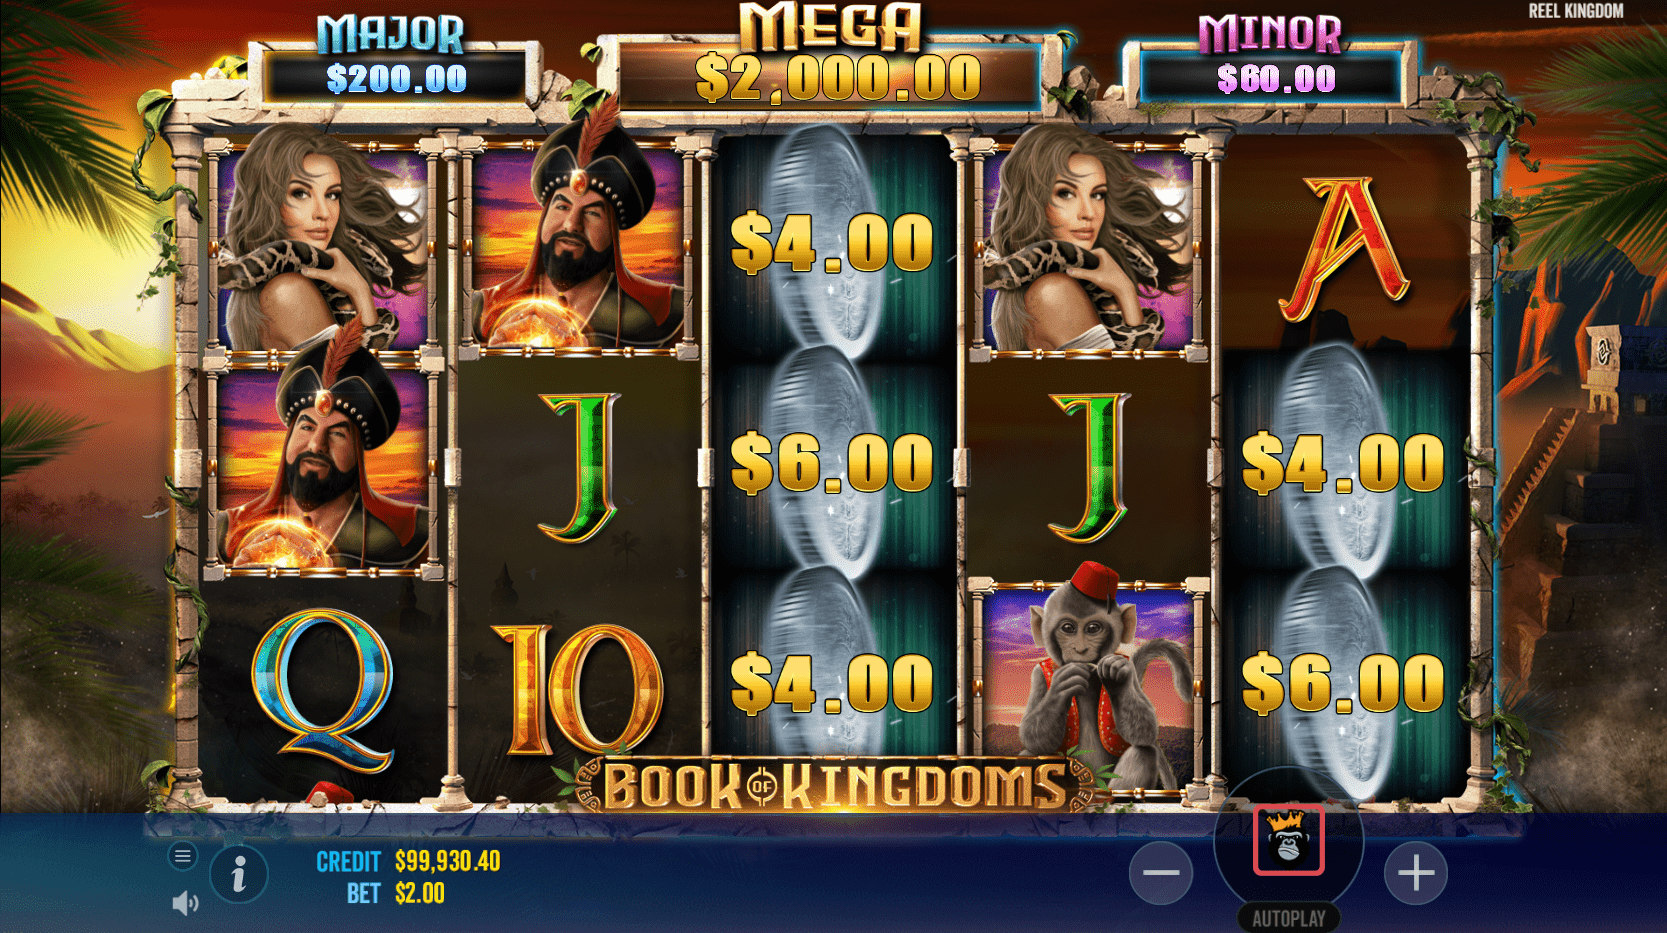 Book Of Kingdoms Video slot Money feature trigger